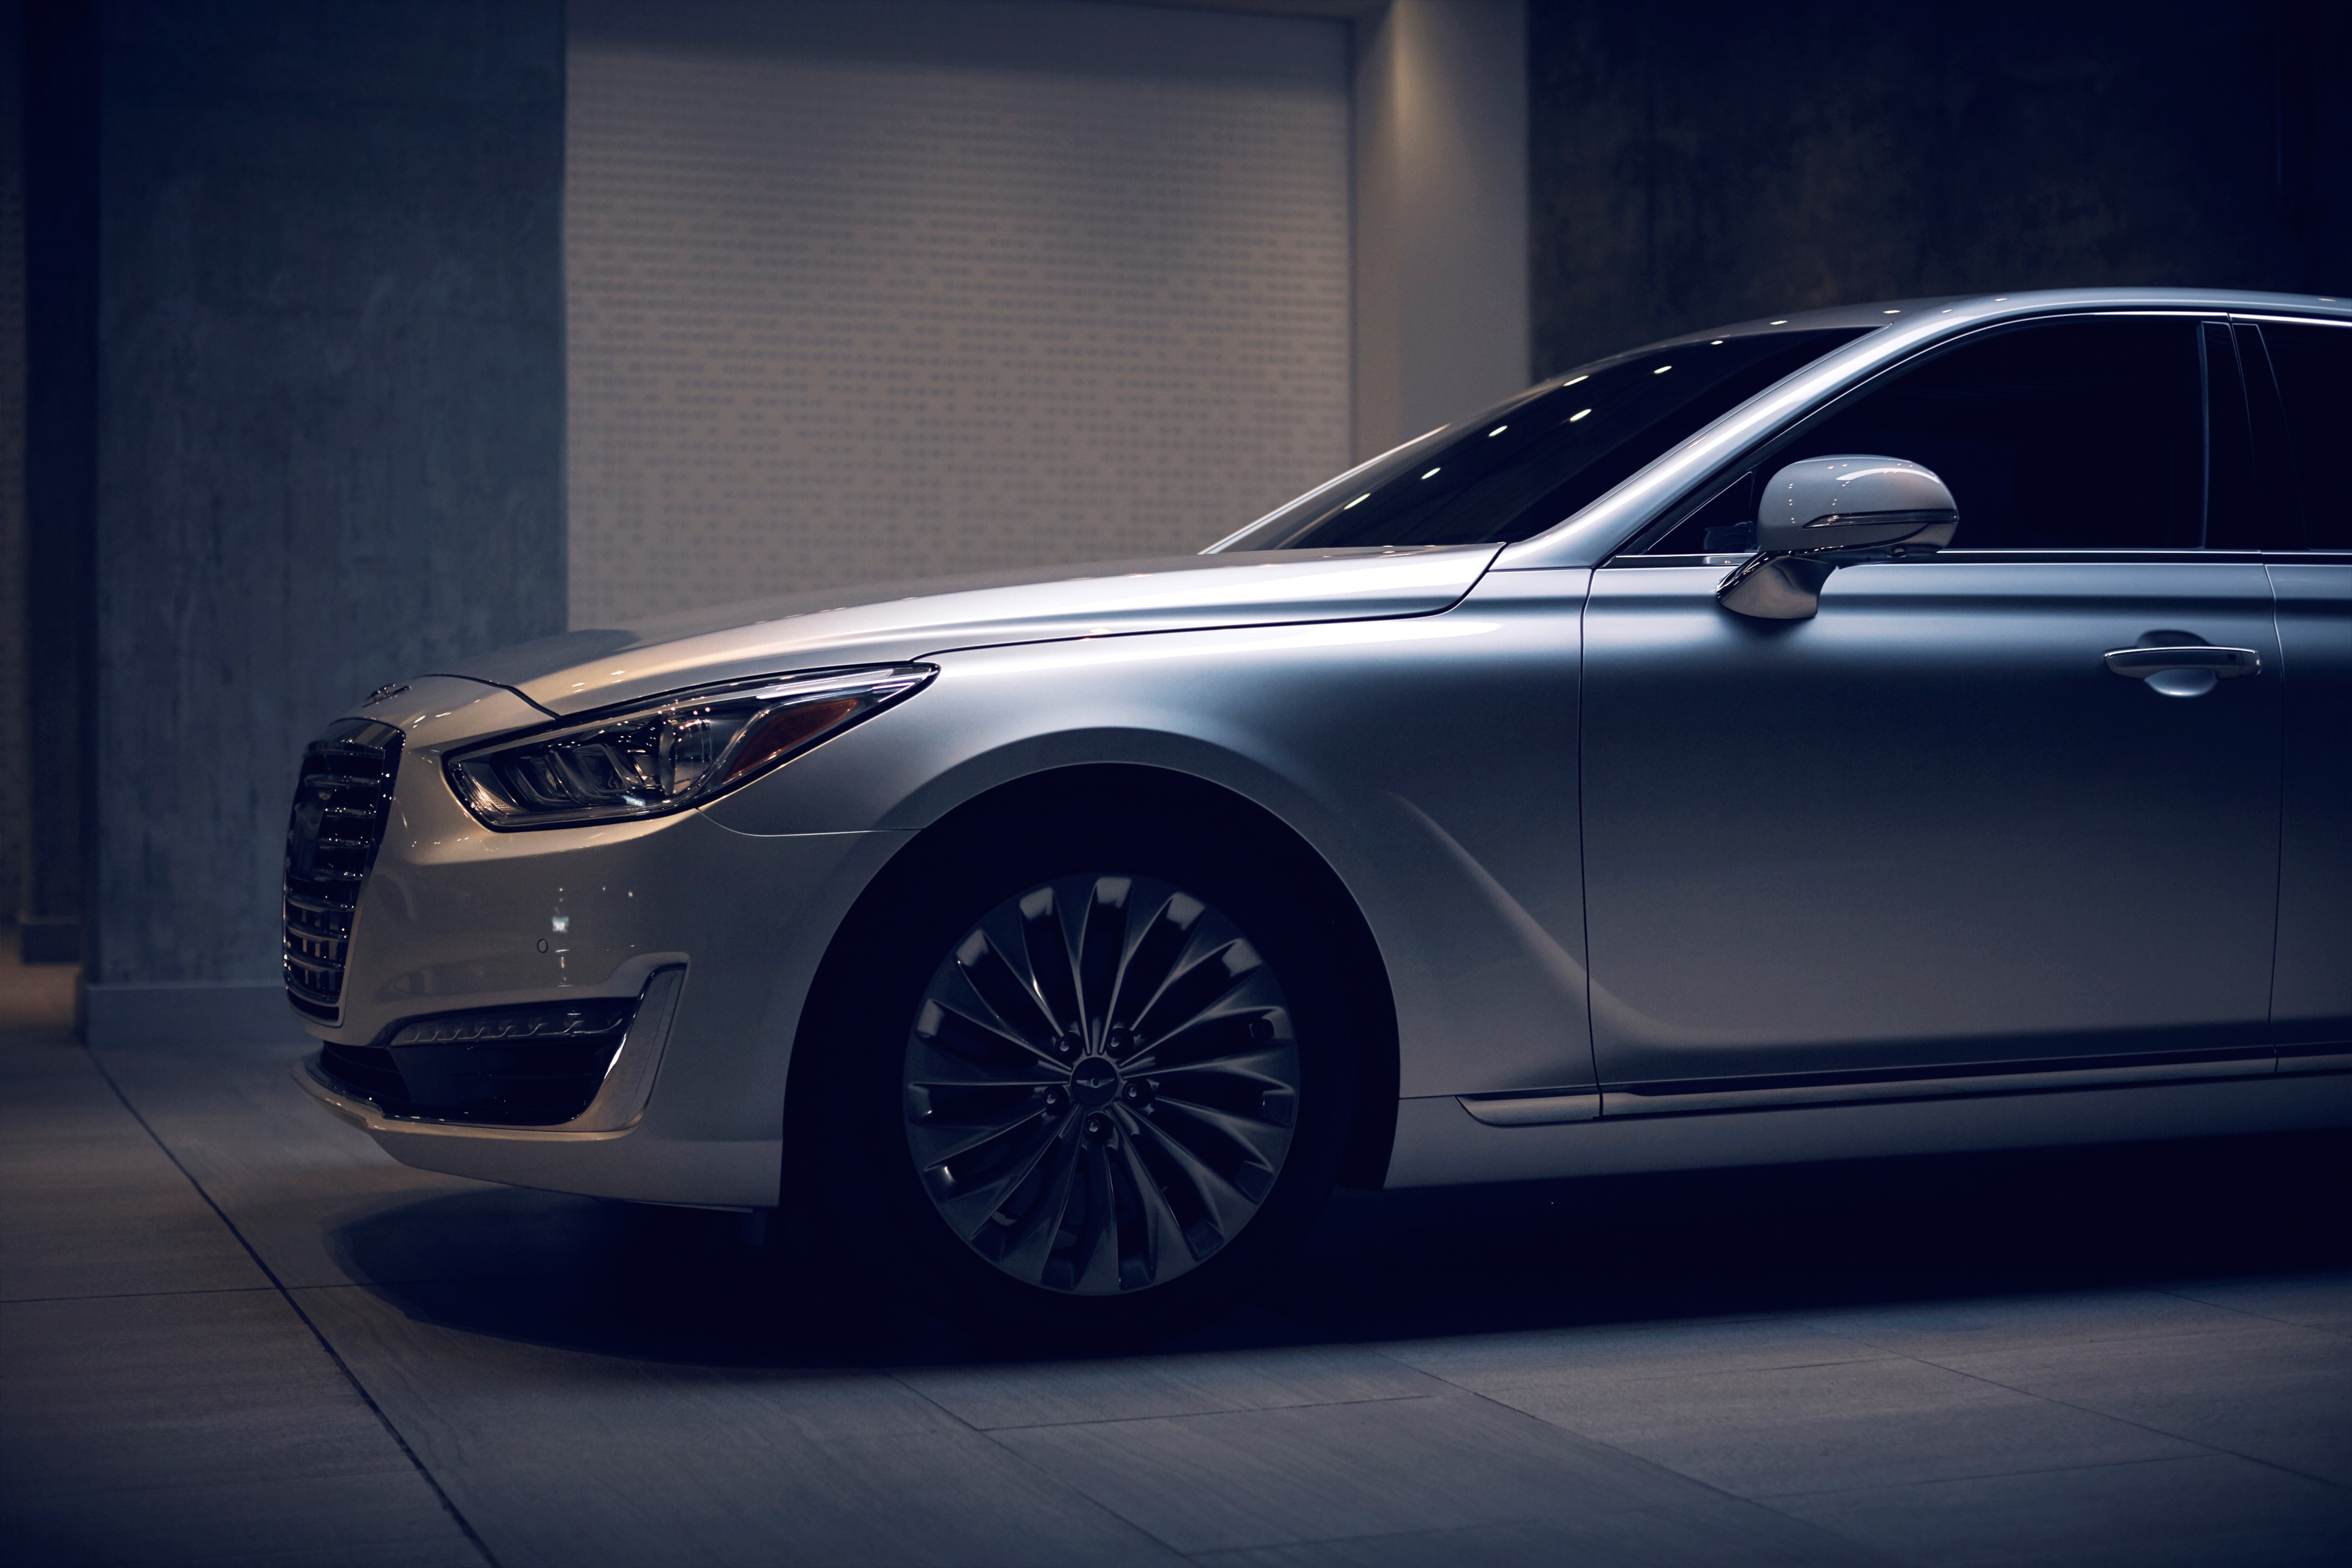 Genesis G90 Flagship Makes North American Debut Paul Tan HD Wallpapers Download free images and photos [musssic.tk]